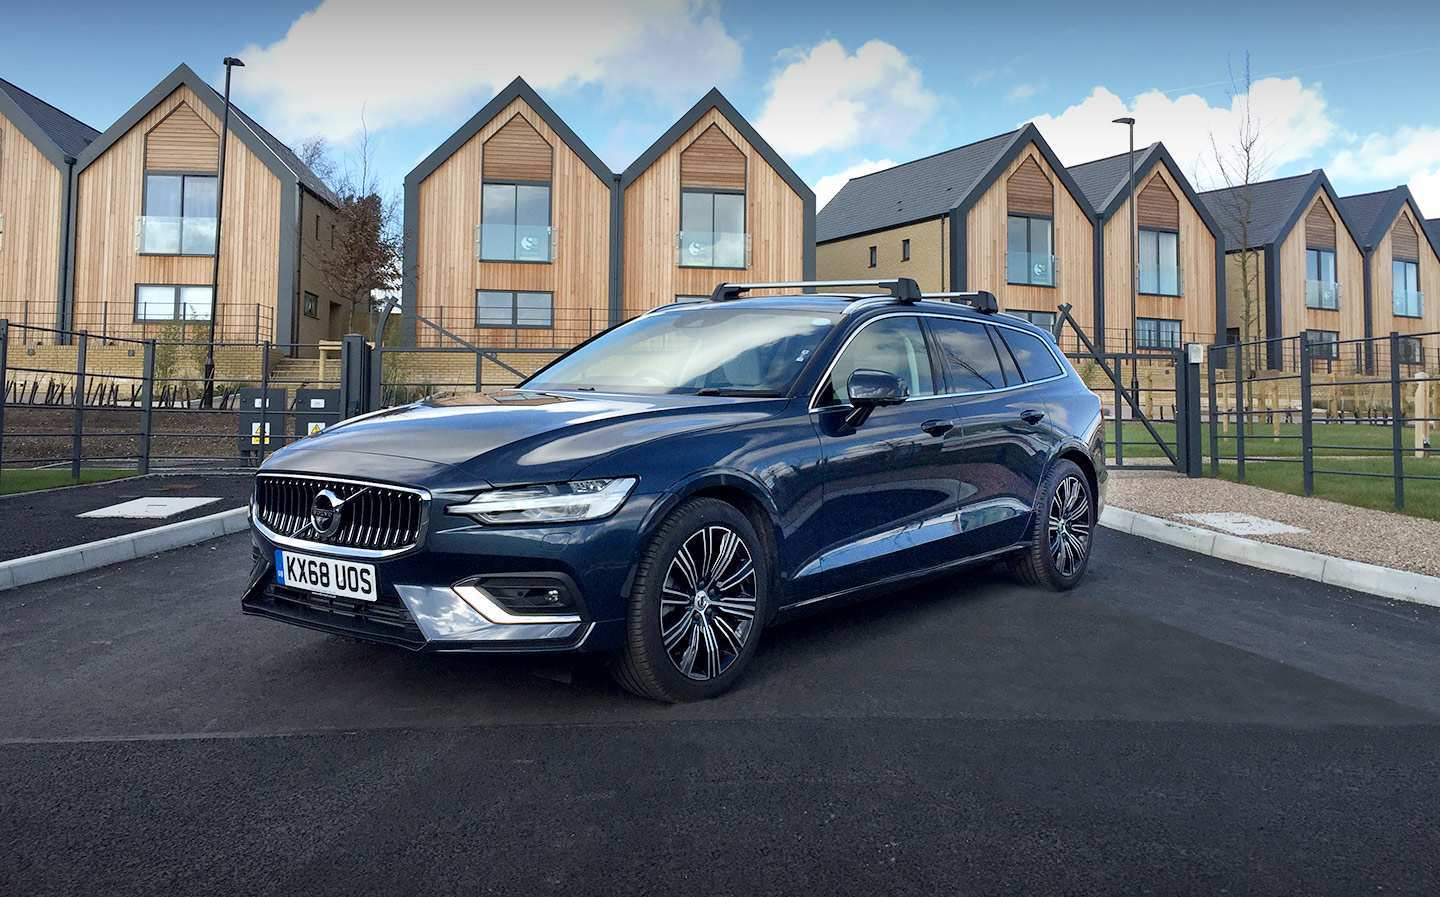 44 Best Review Best Volvo T5 2019 Review Pictures for Best Volvo T5 2019 Review